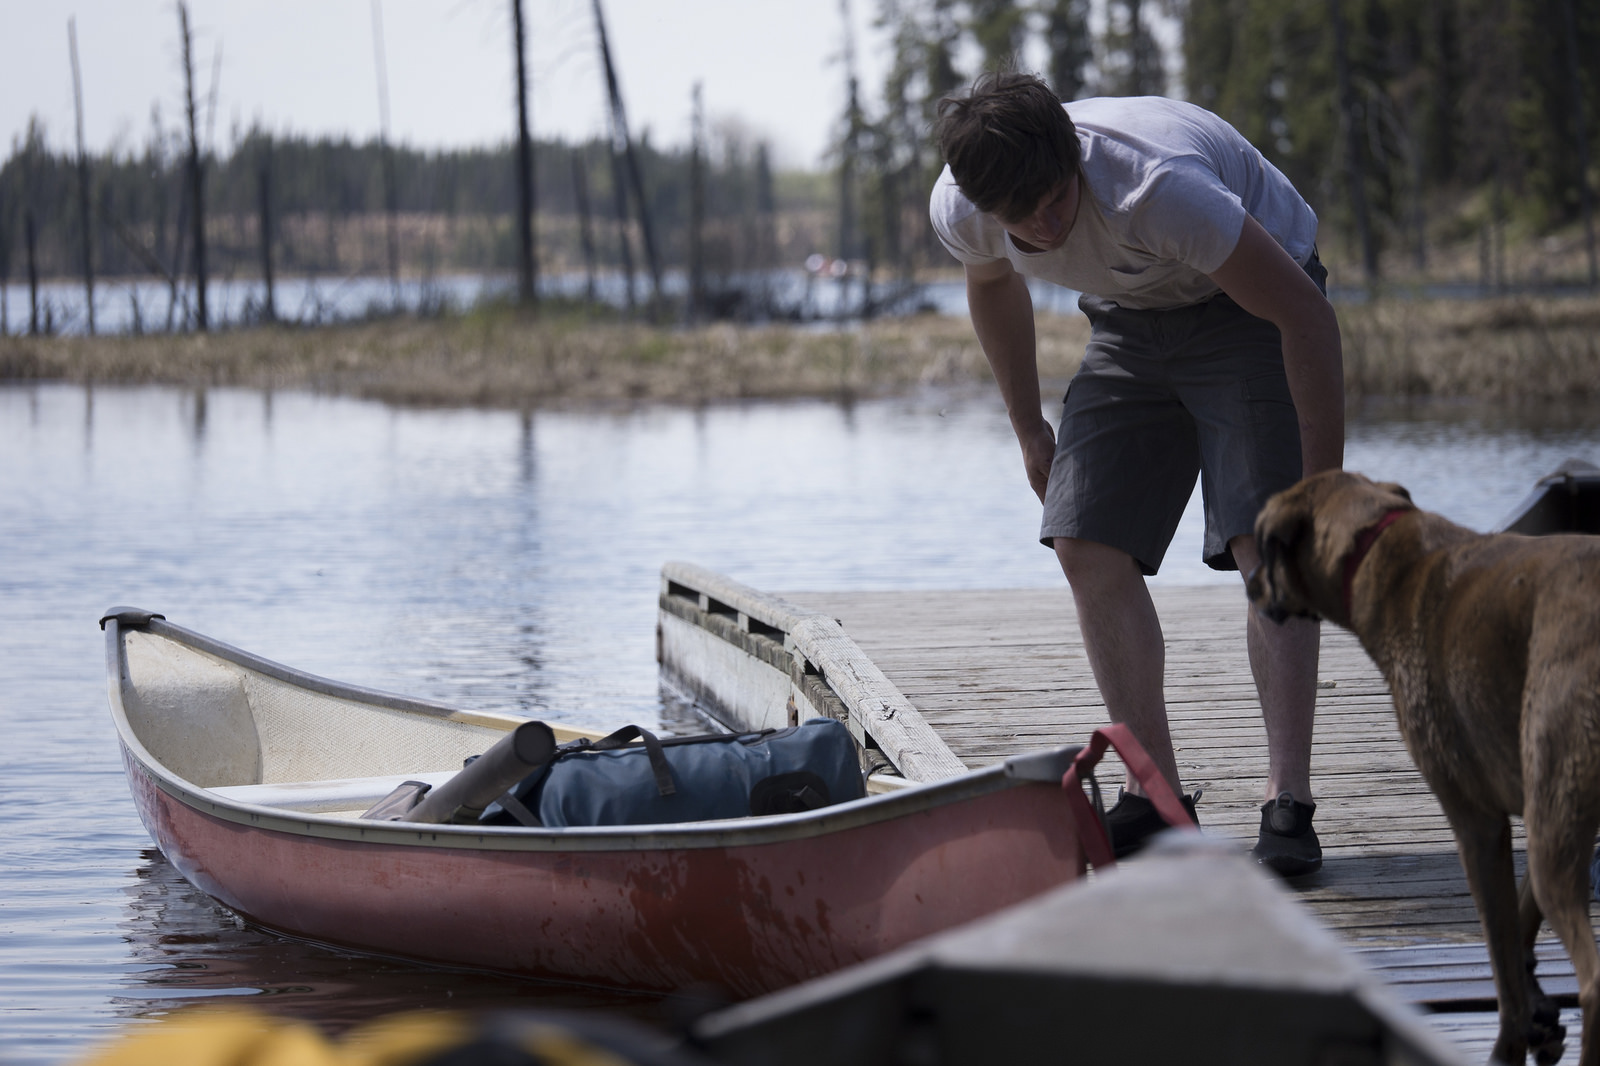 Nate unloading gear at North Steeprock Lake.